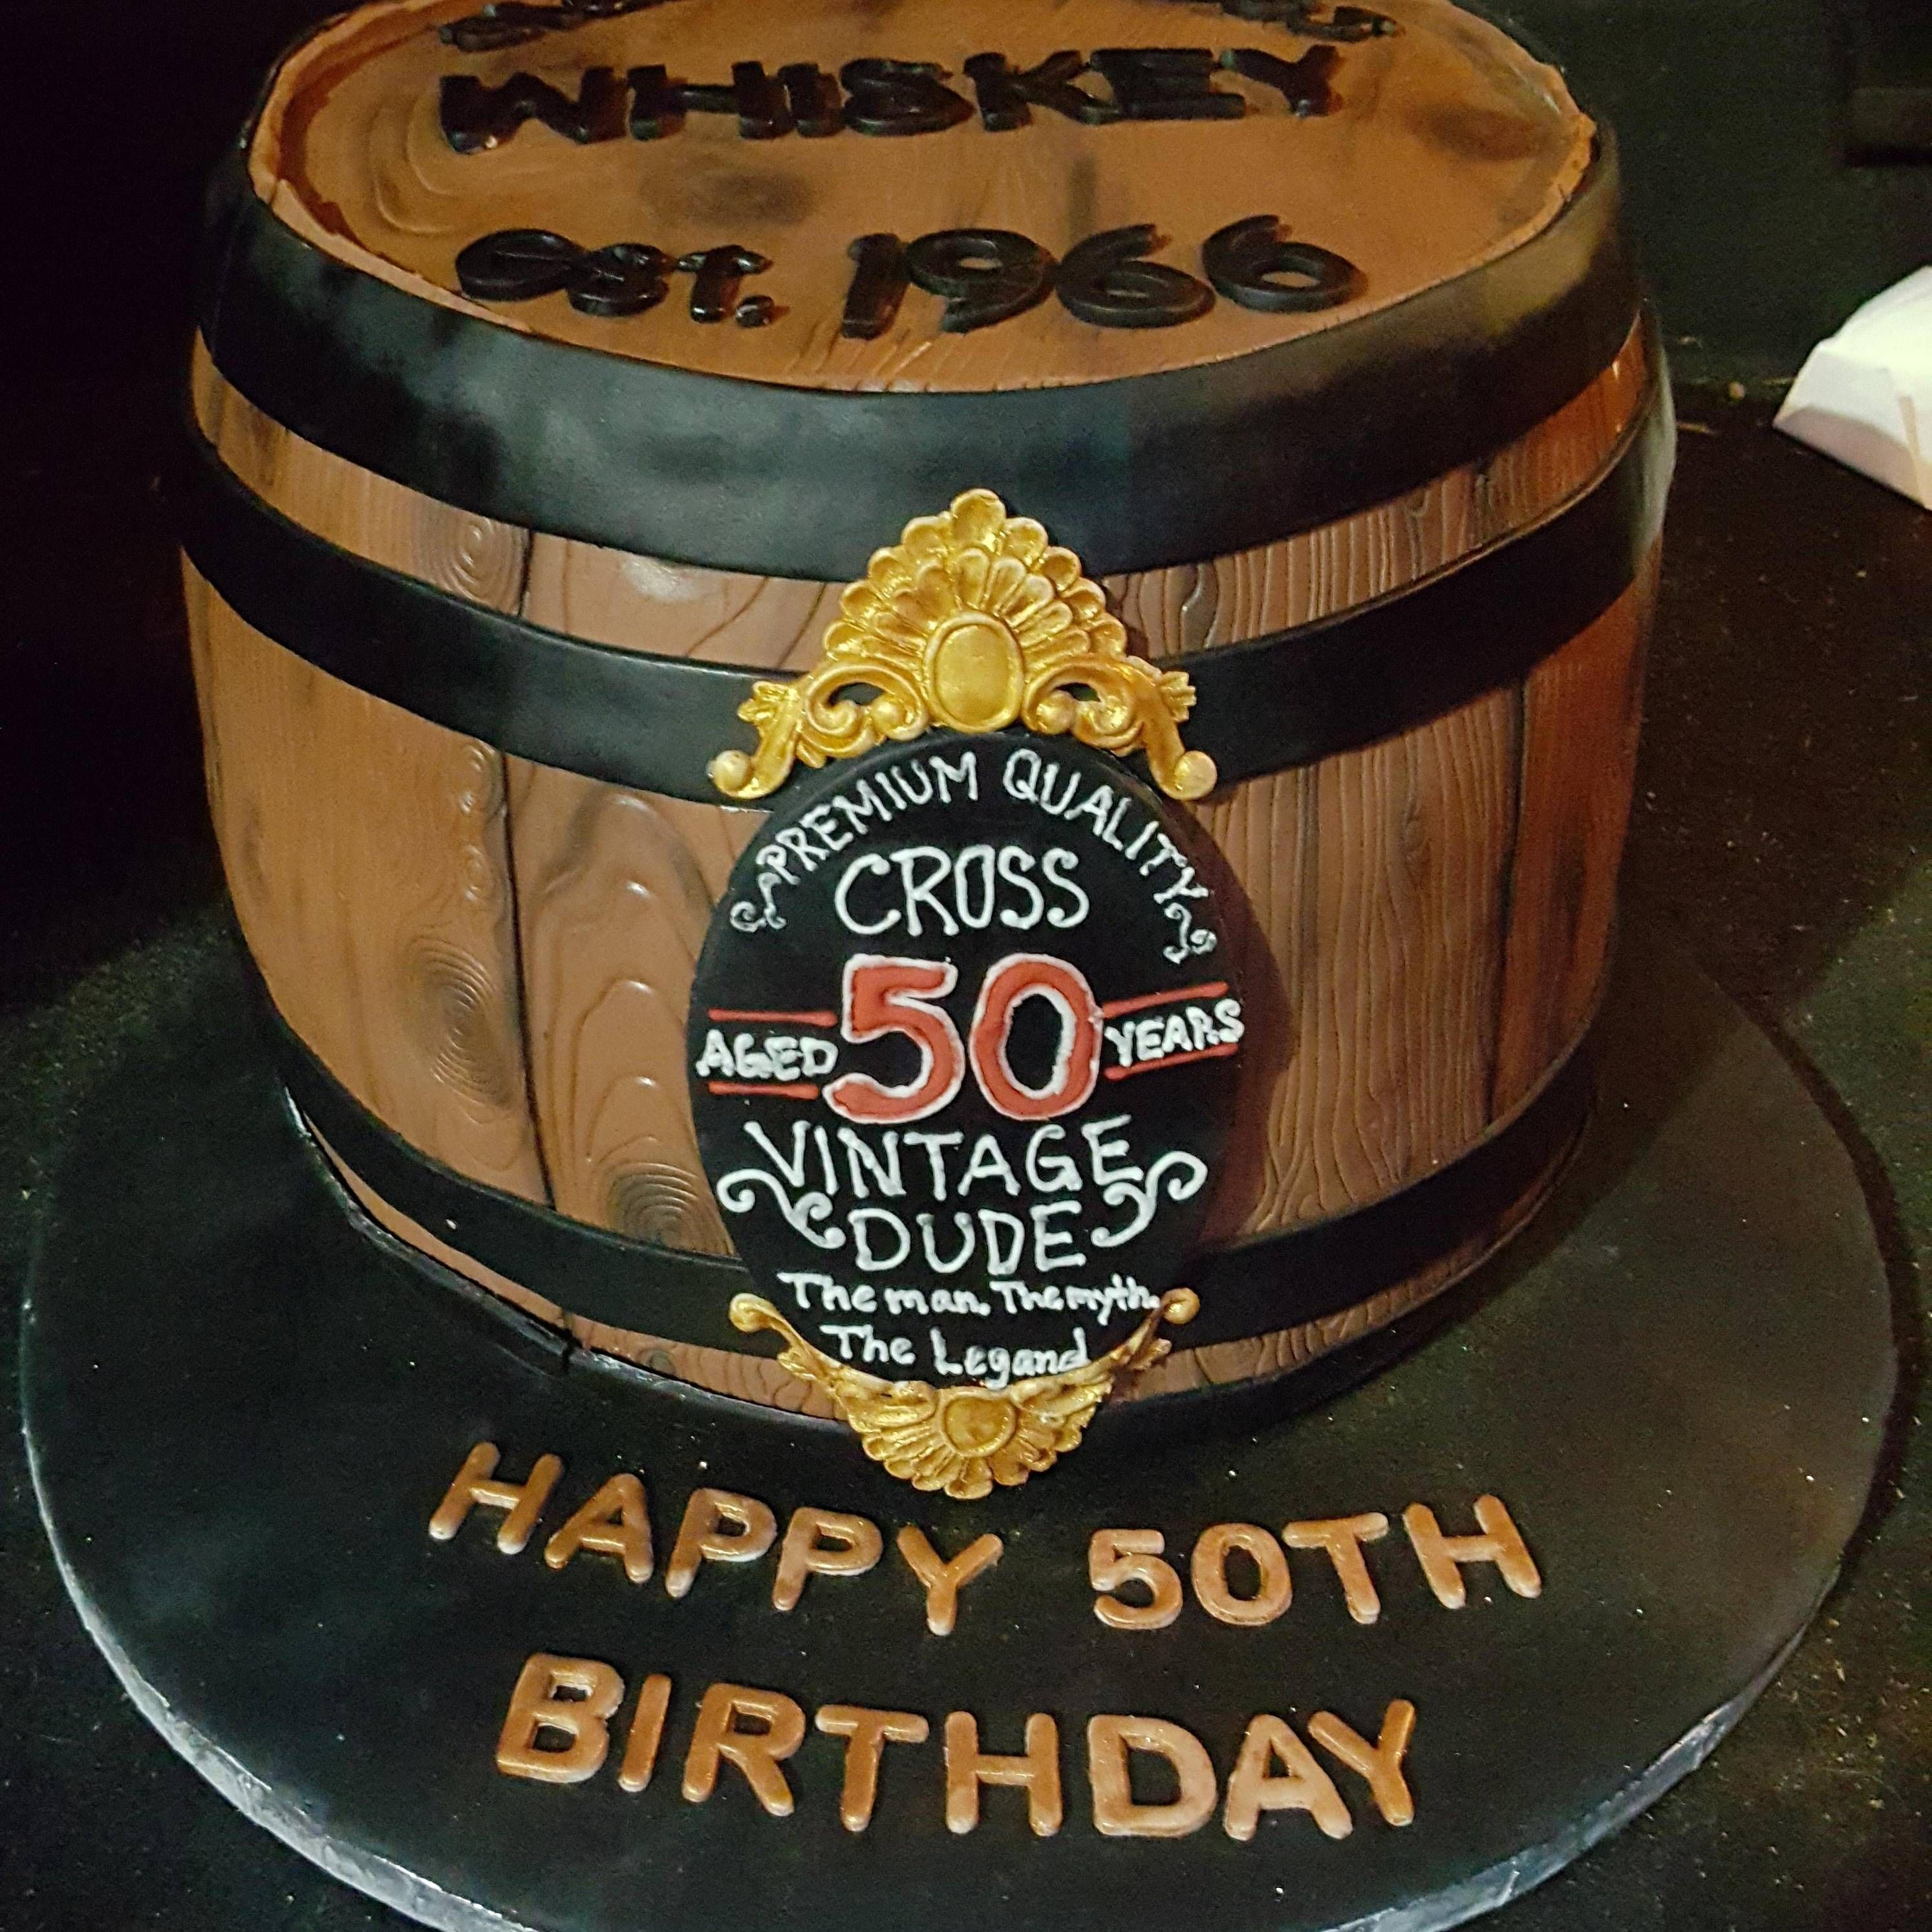 Pin By Arata On Good Foods In 2019 Bourbon Cake Barrel